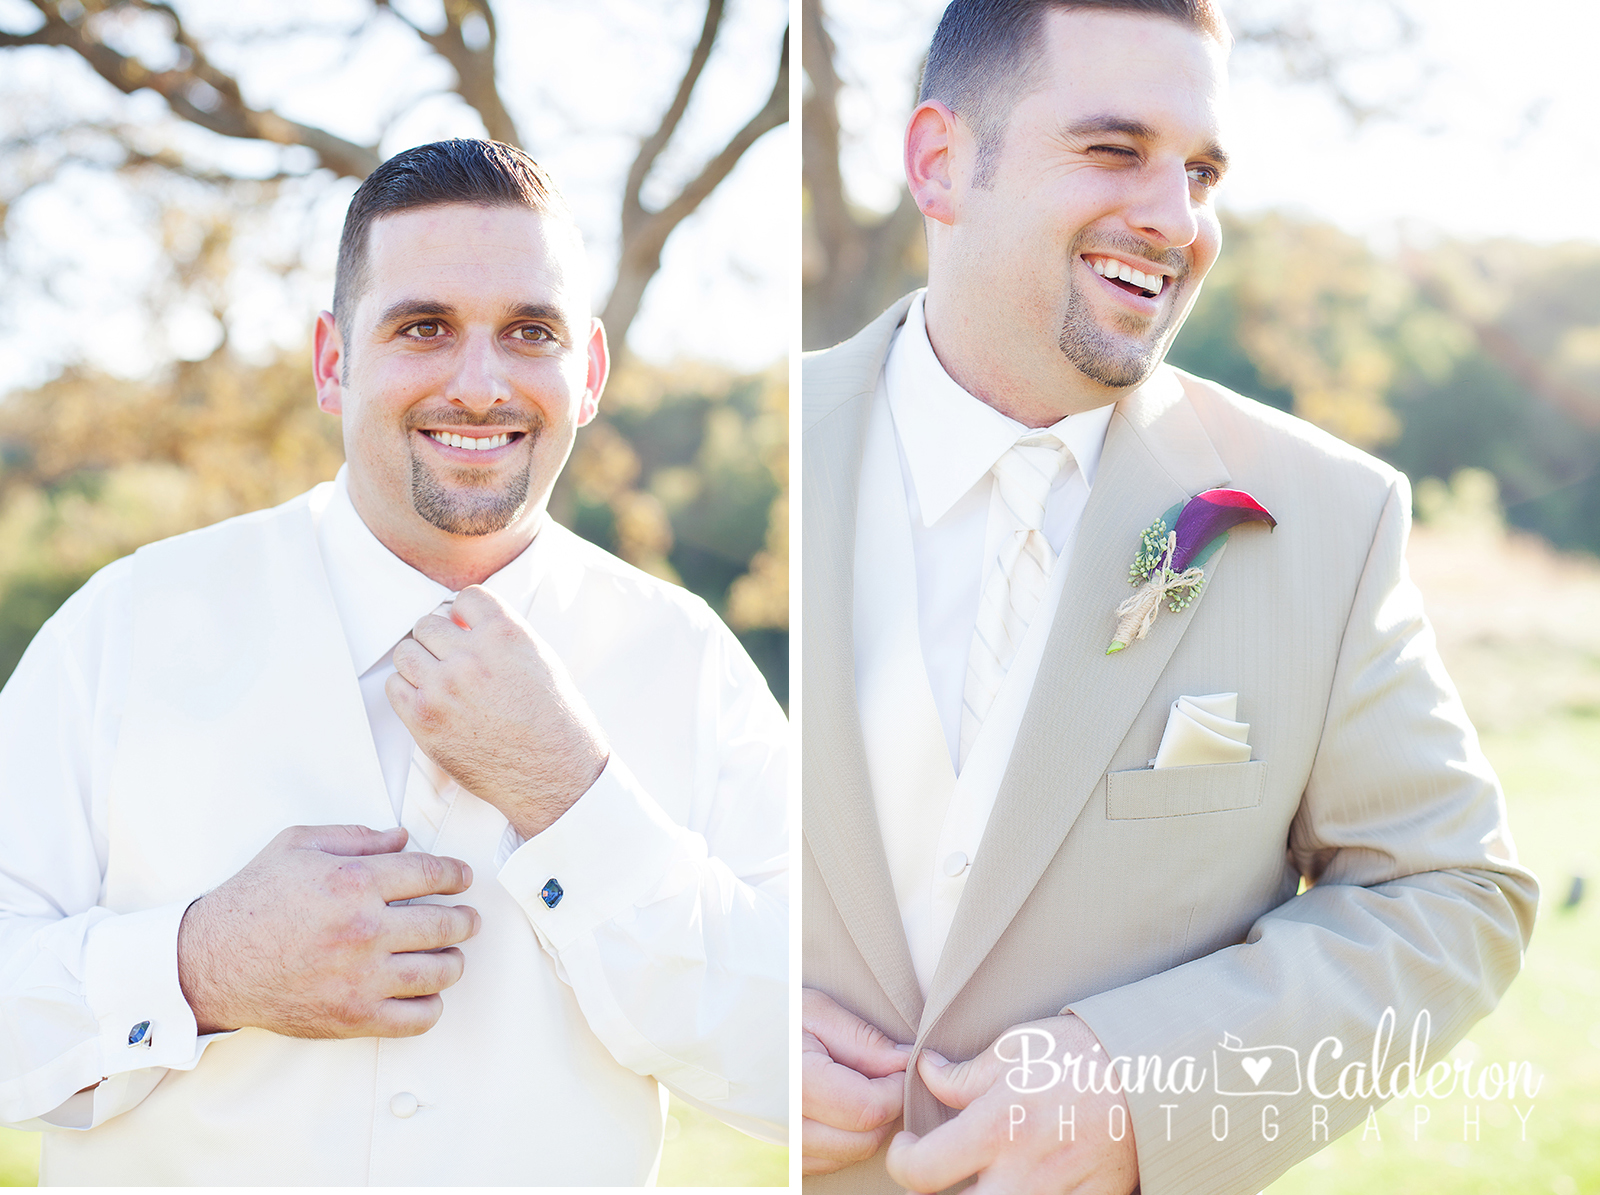 Wedding pictures from Cinnabar Hills Golf Club in San Jose, CA.  Photos by Briana Calderon Photography based in the San Francisco Bay Area.